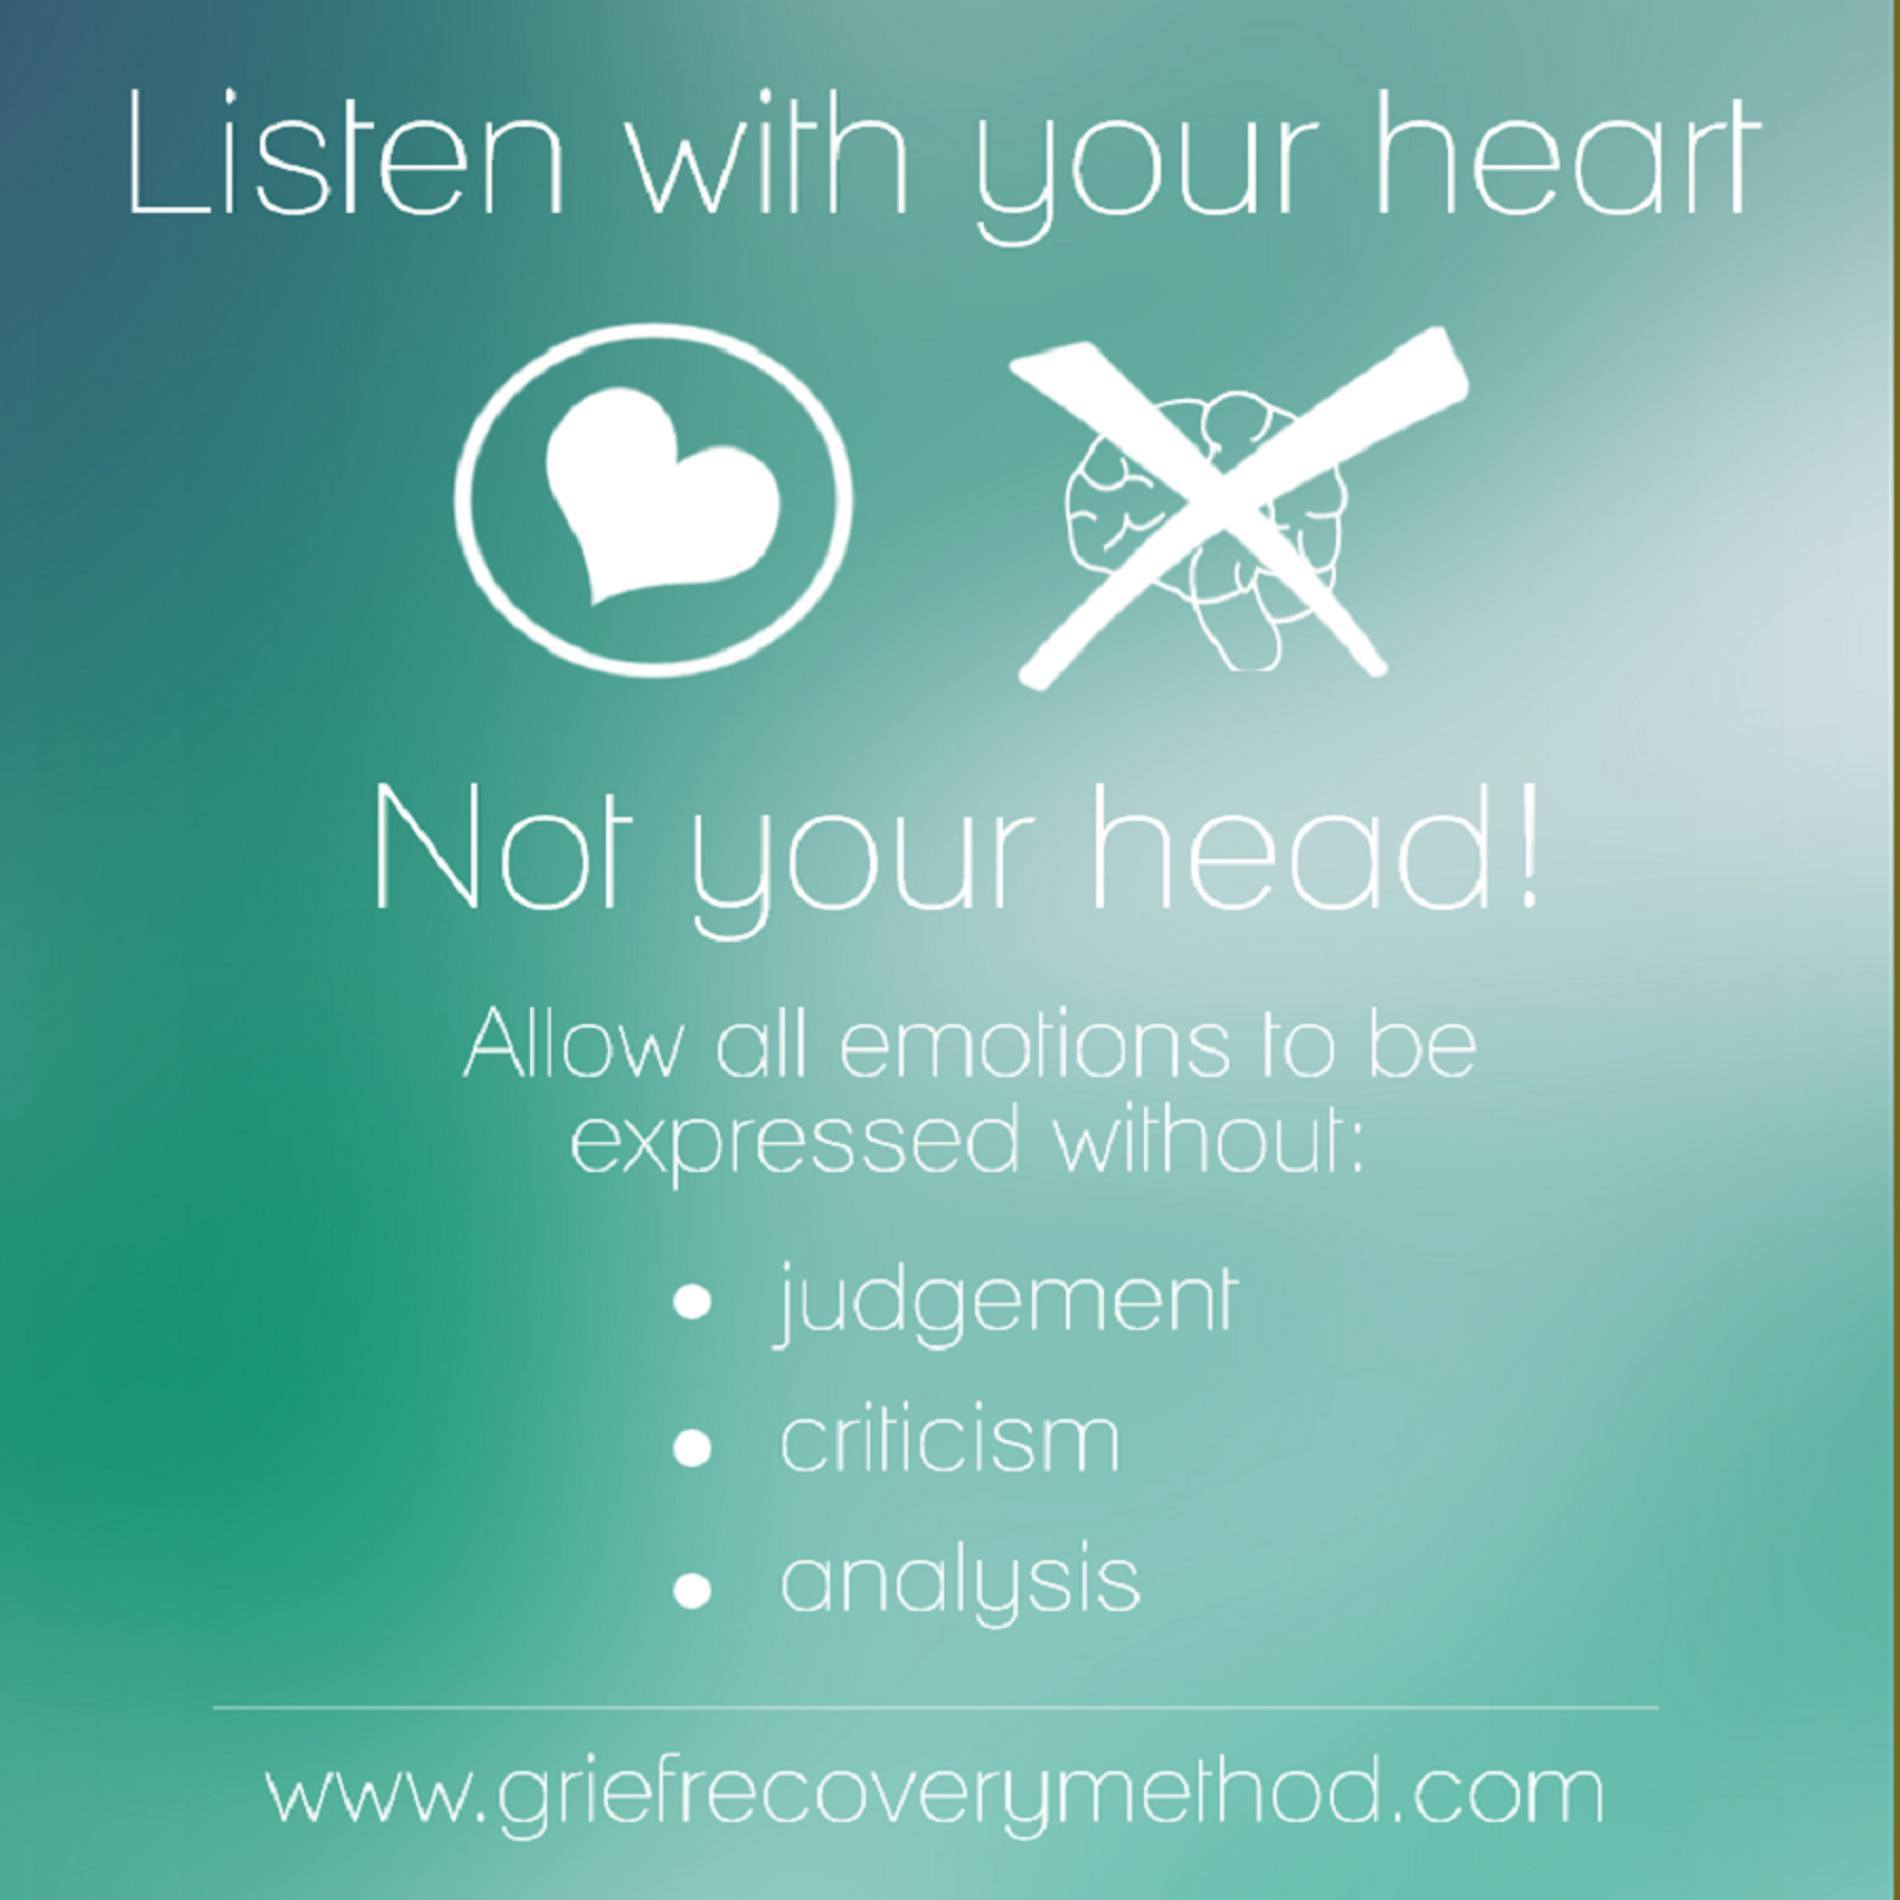 listen with your heart not head